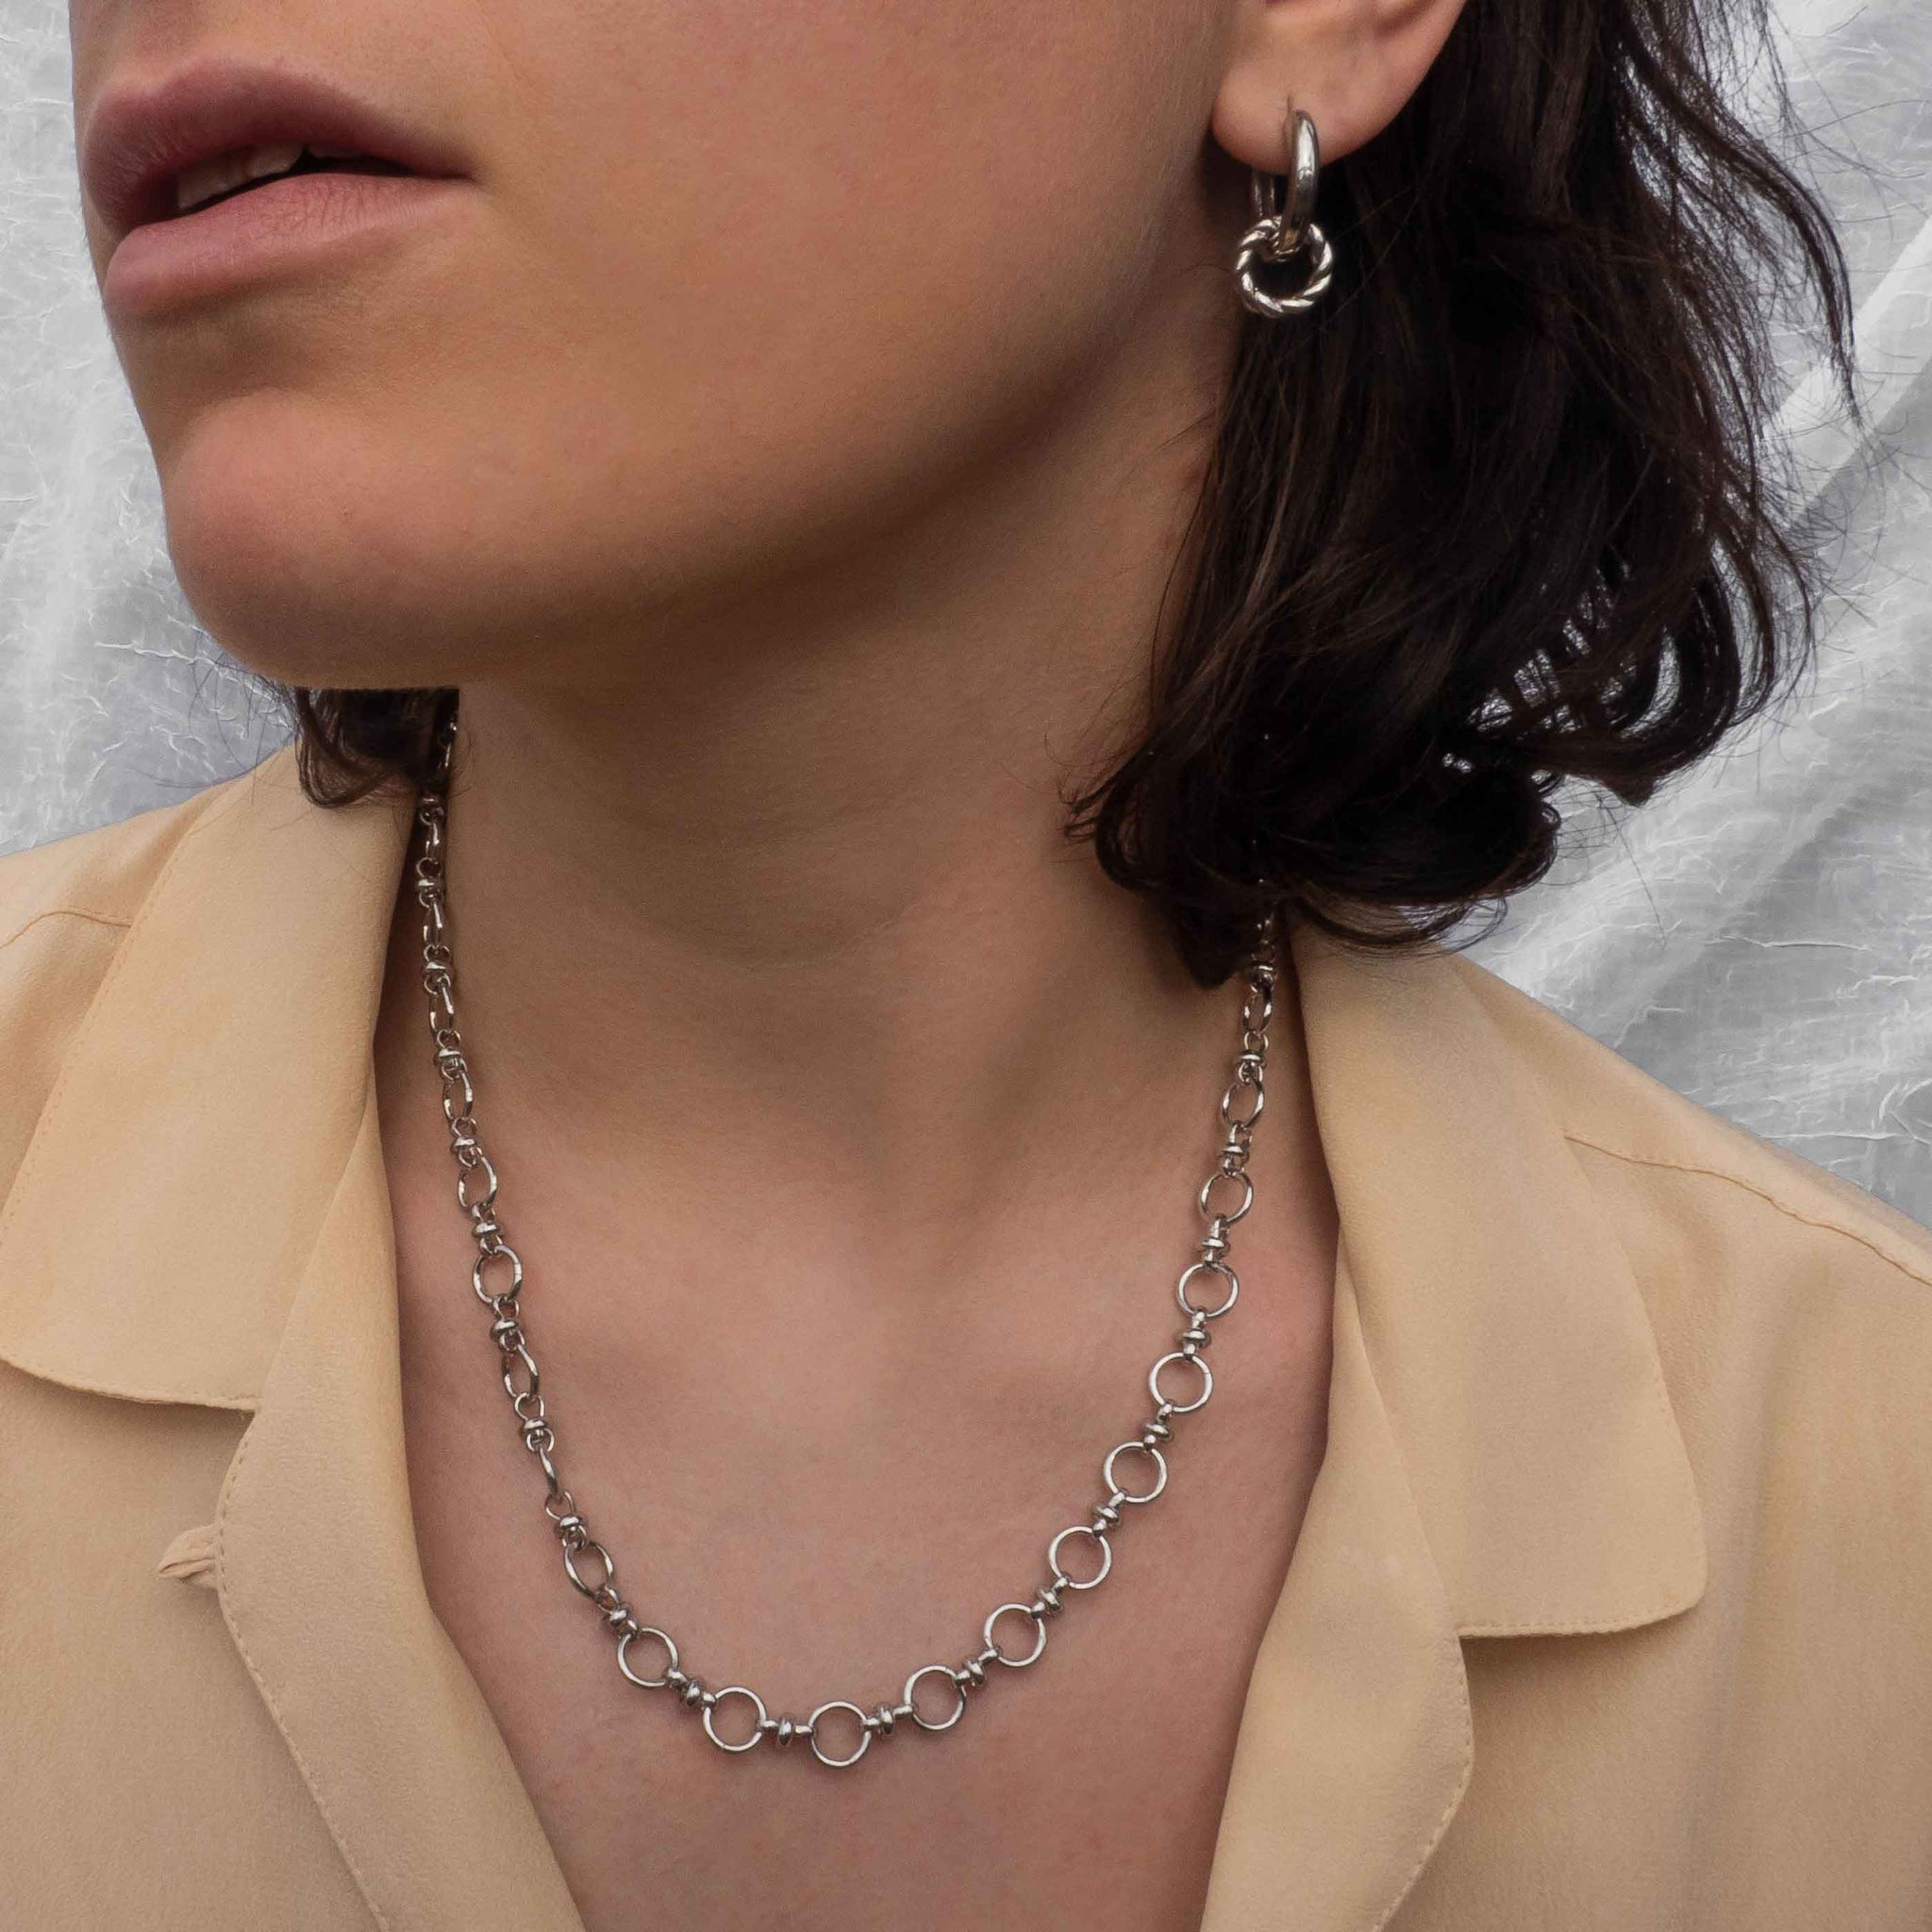 Circle Link Chain Necklace in Silver worn with silver hoops